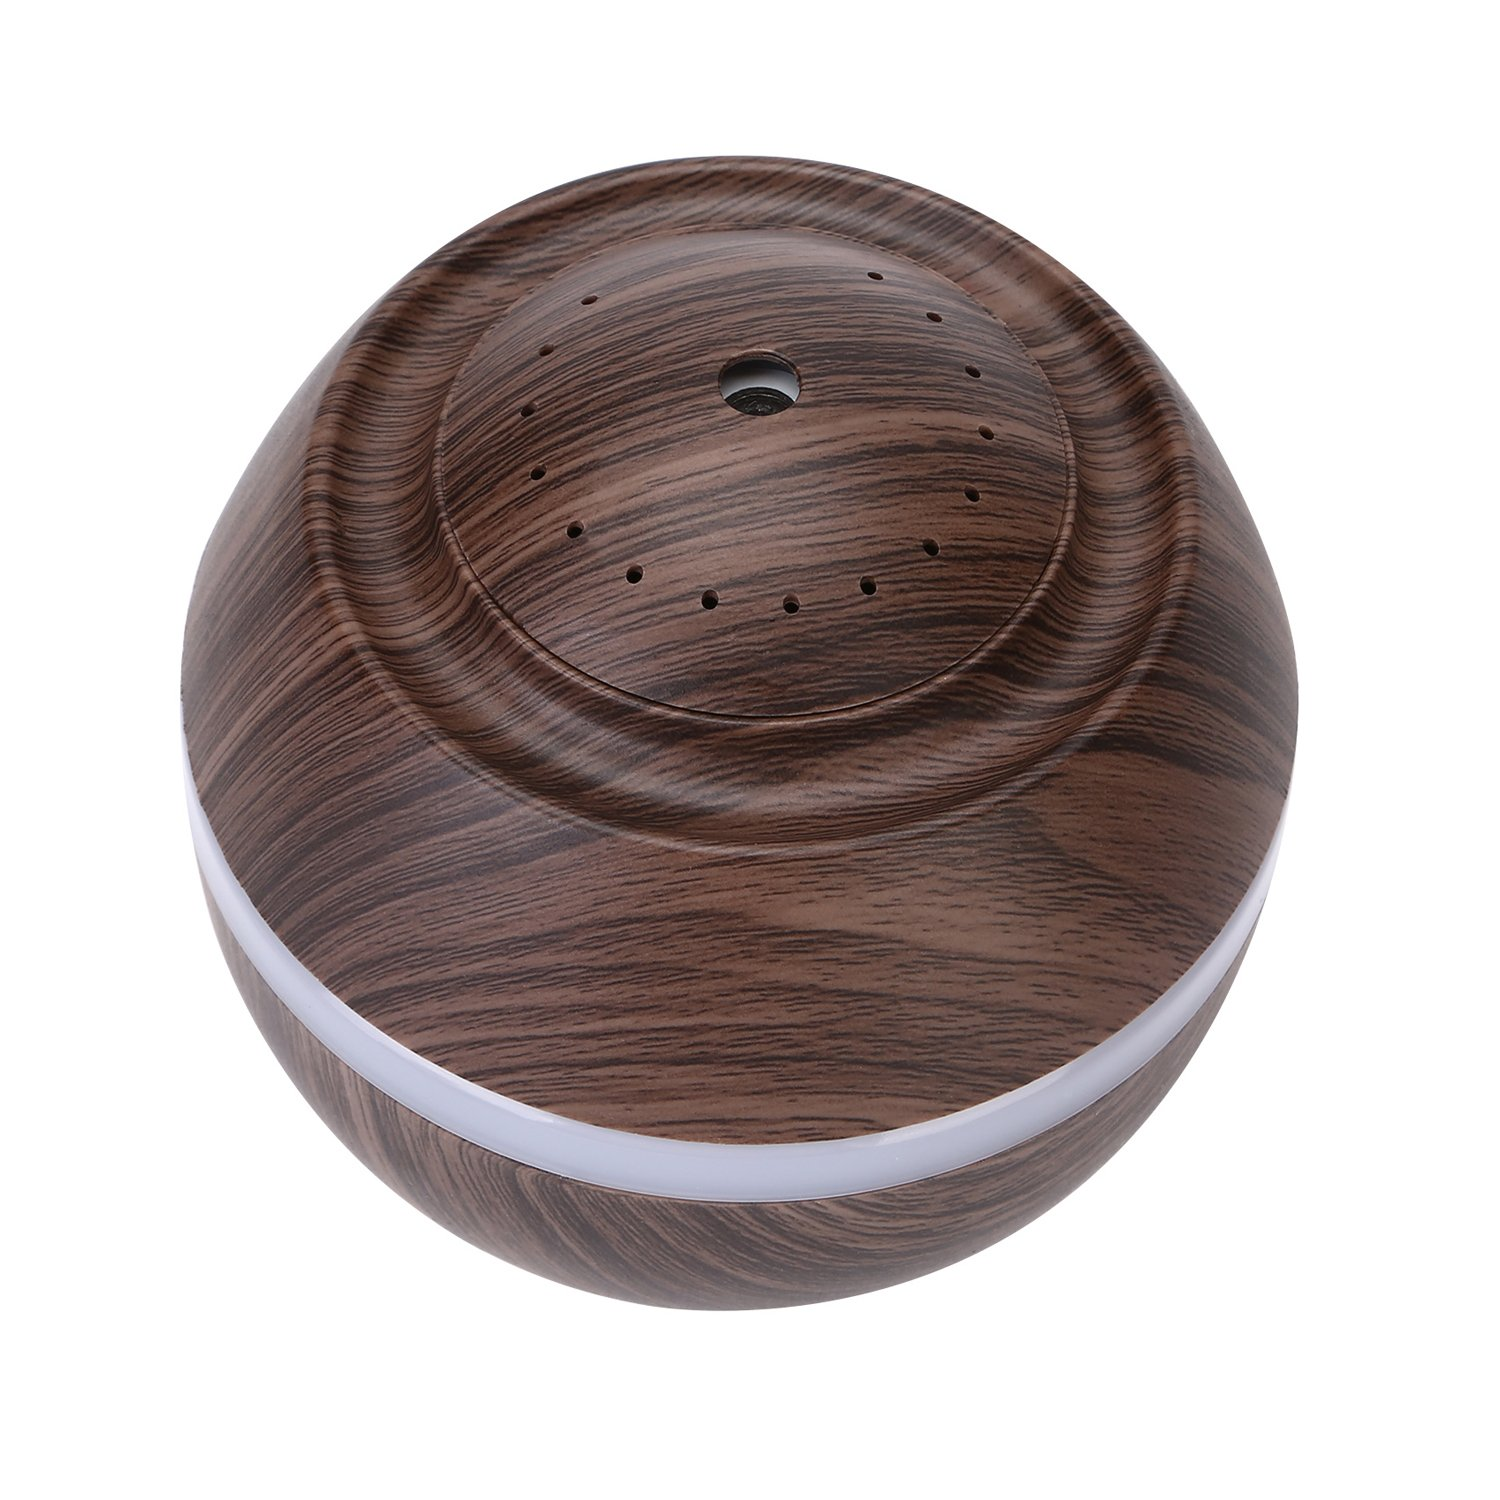 Cool Mist Humidifier Ultrasonic Aroma Essential Oil Diffuser for Office Home Bedroom Living Room Study Yoga Spa - Wood Grain (Brown) by O'abazar (Image #9)